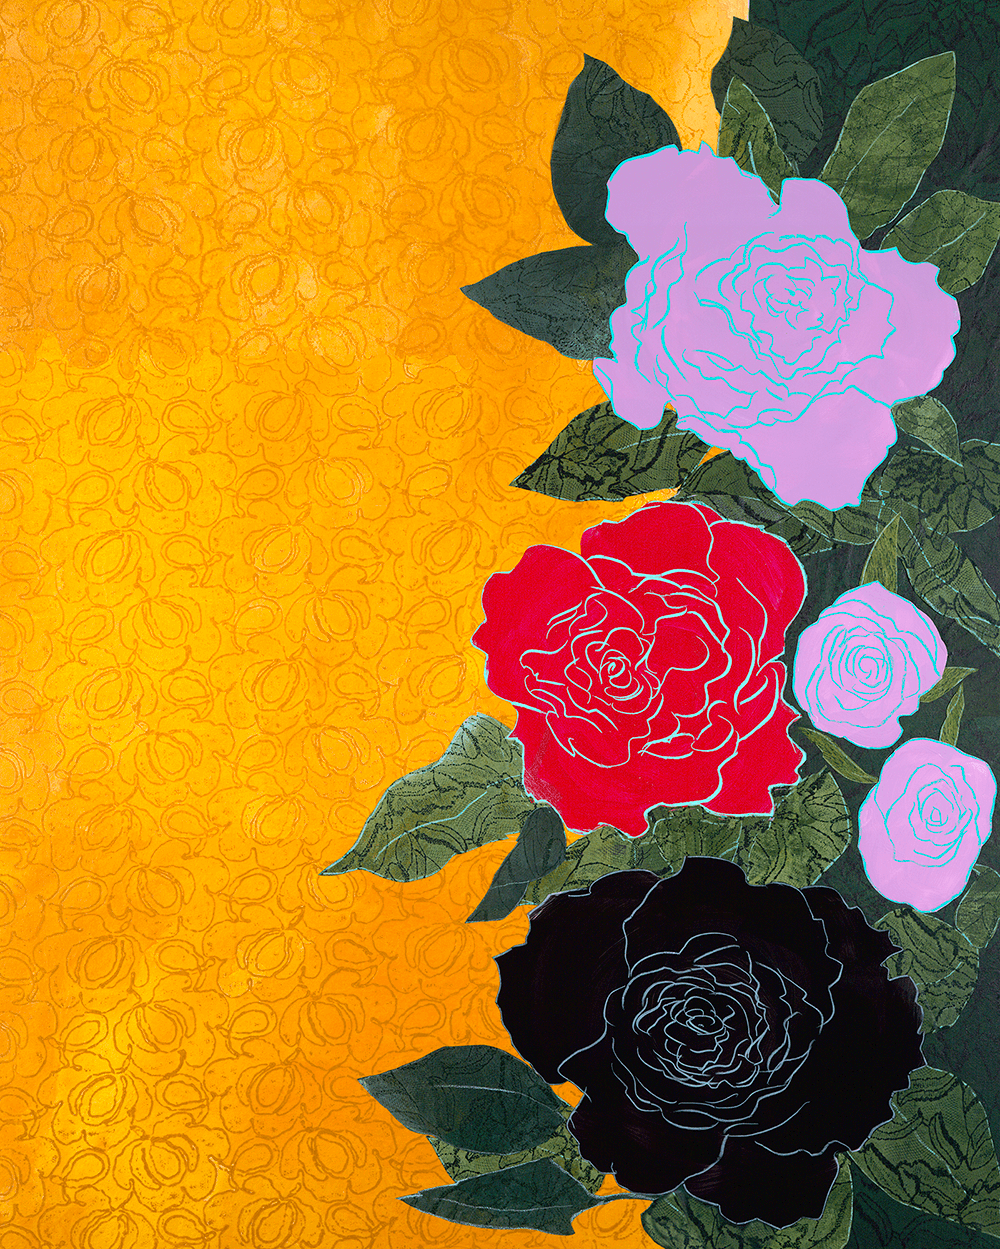 5 Roses 25 x 30 inches